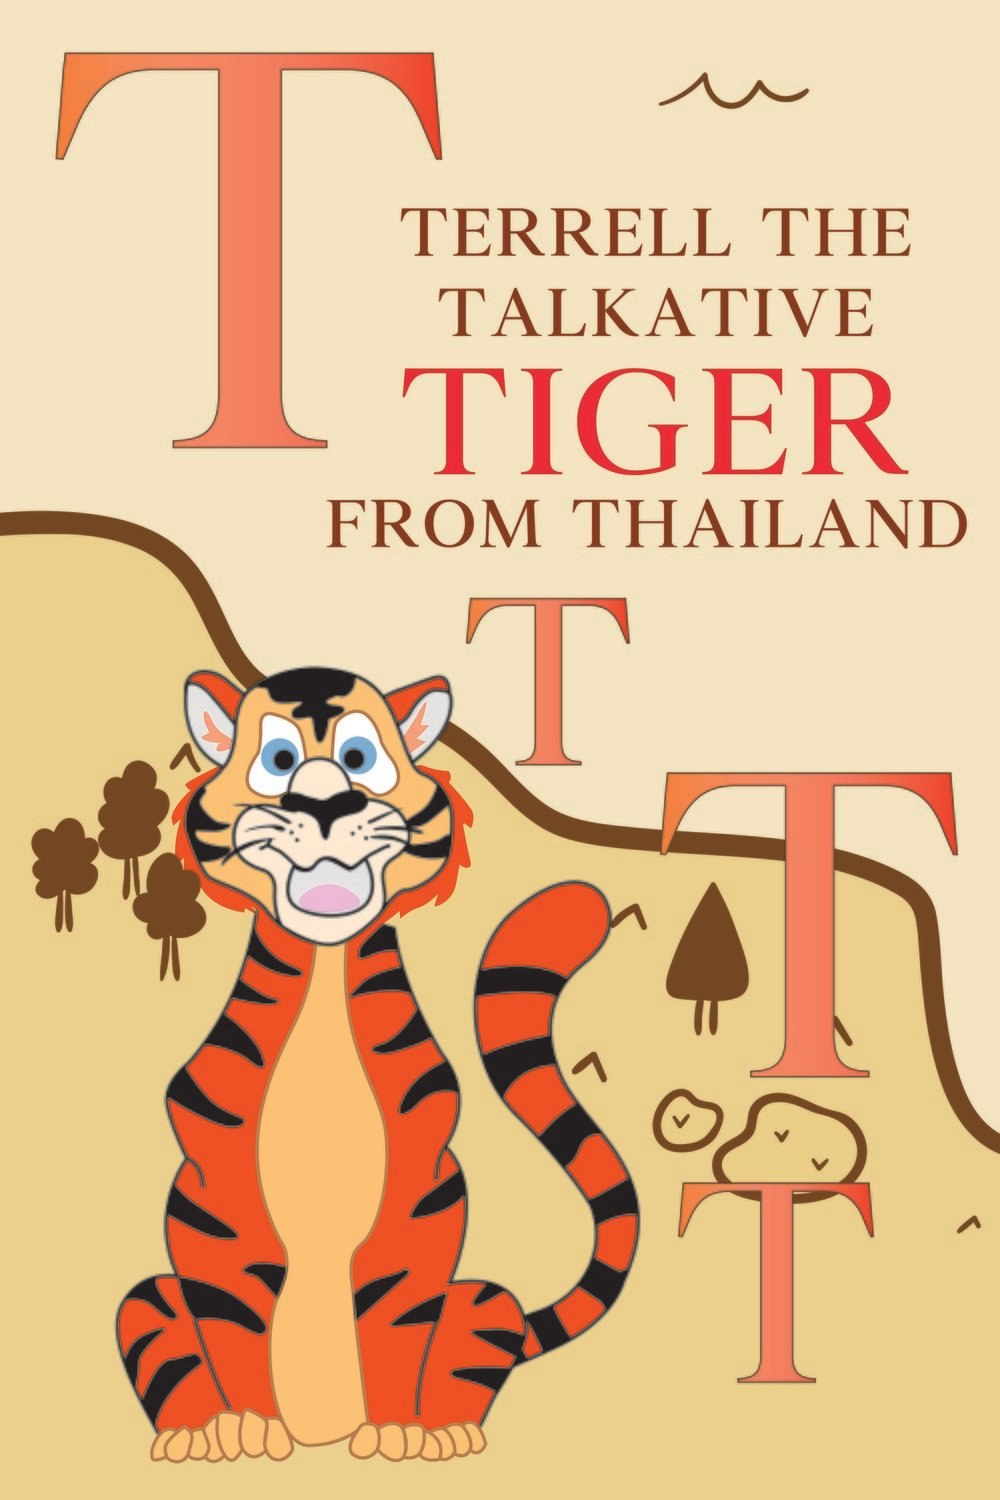 Terrell The Talkative TIGER From THAILAND Poster